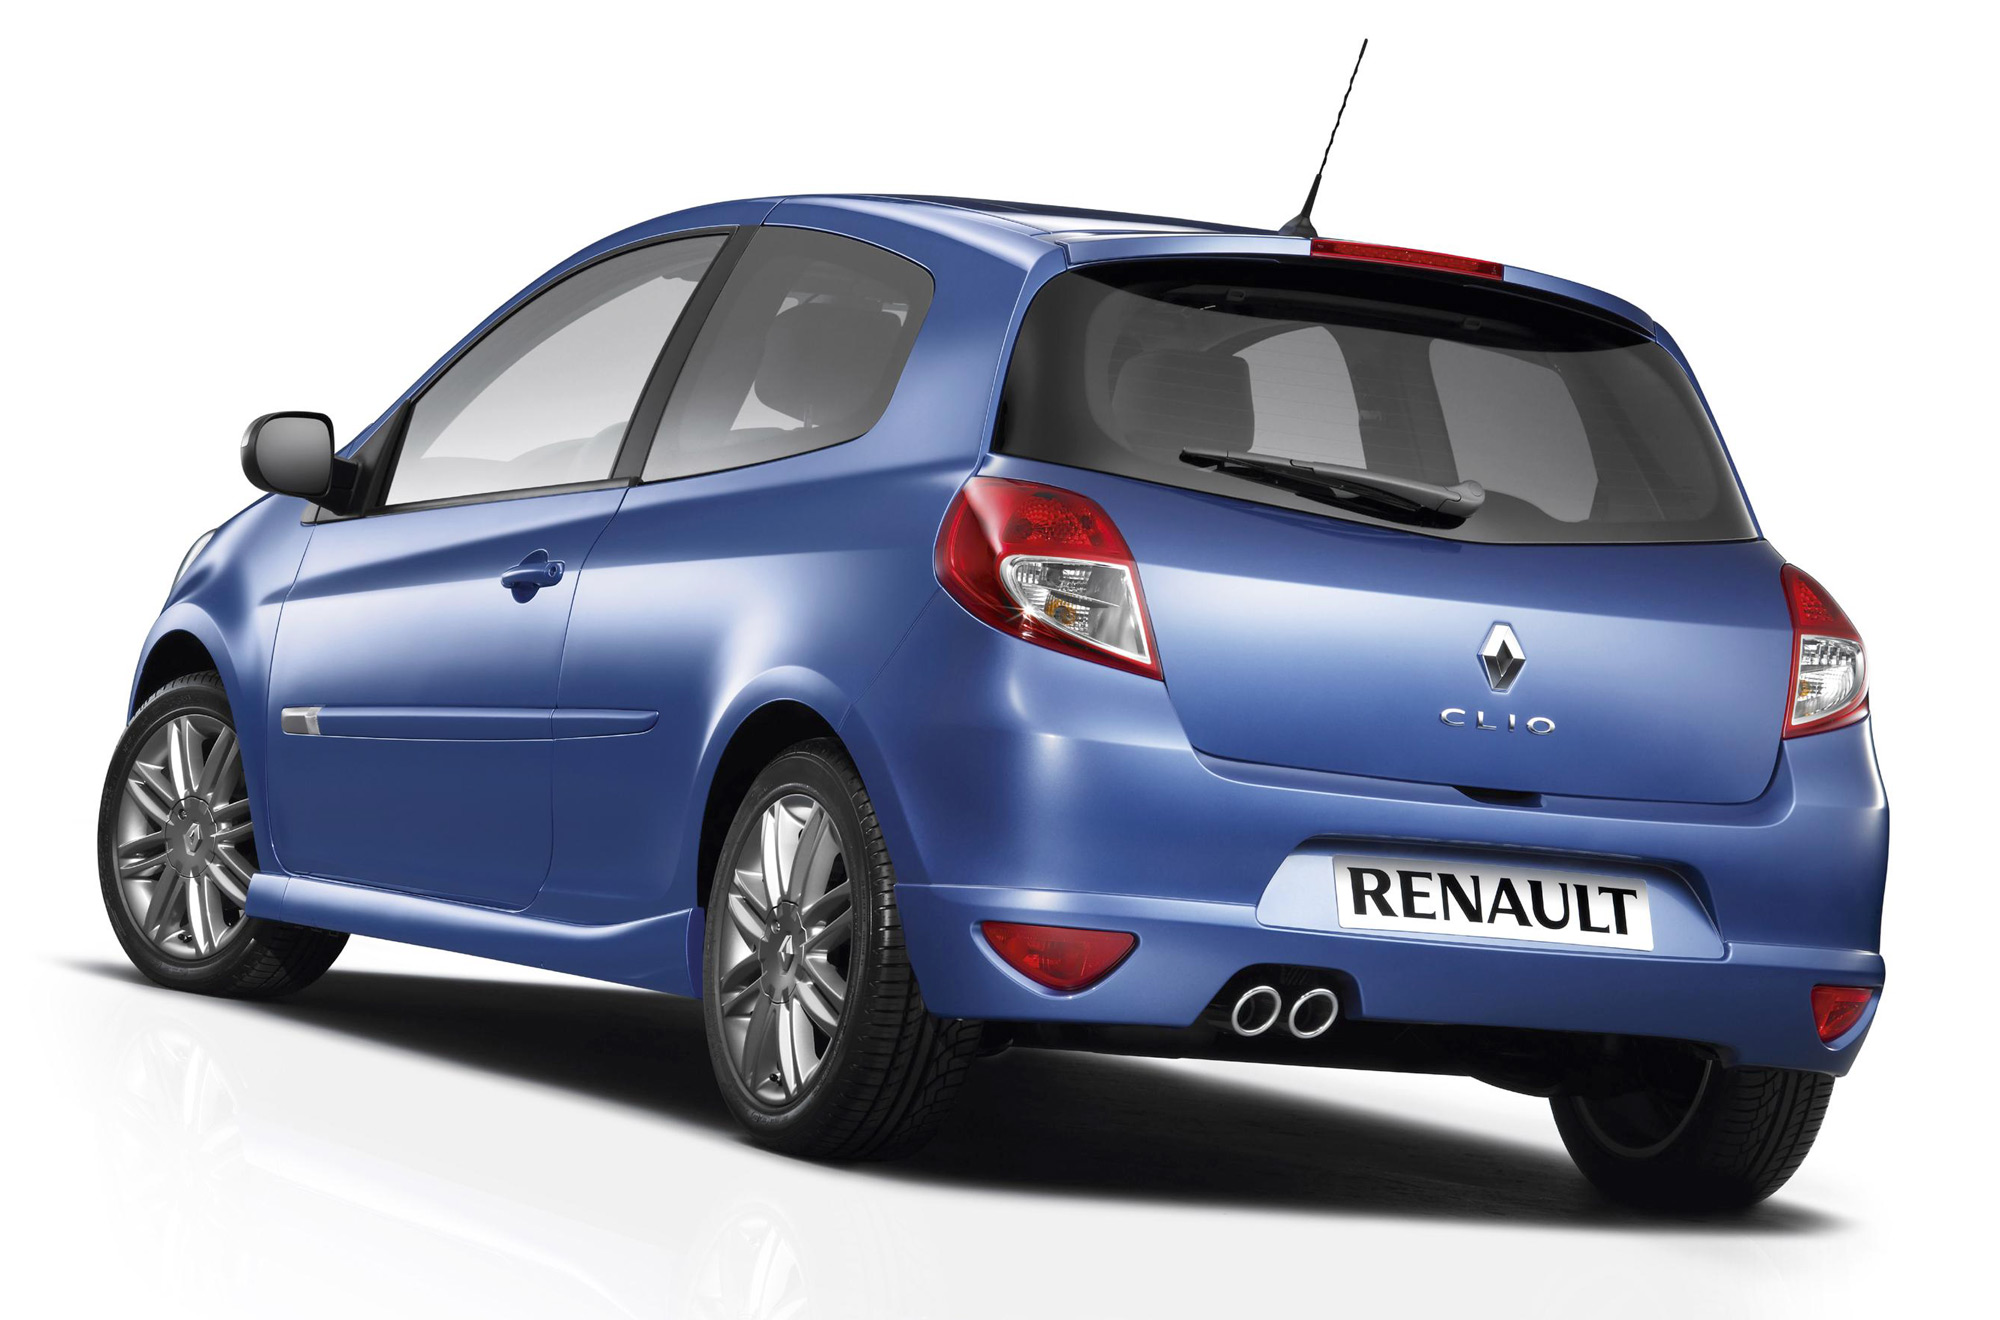 renault clio iii 2010 taringa. Black Bedroom Furniture Sets. Home Design Ideas